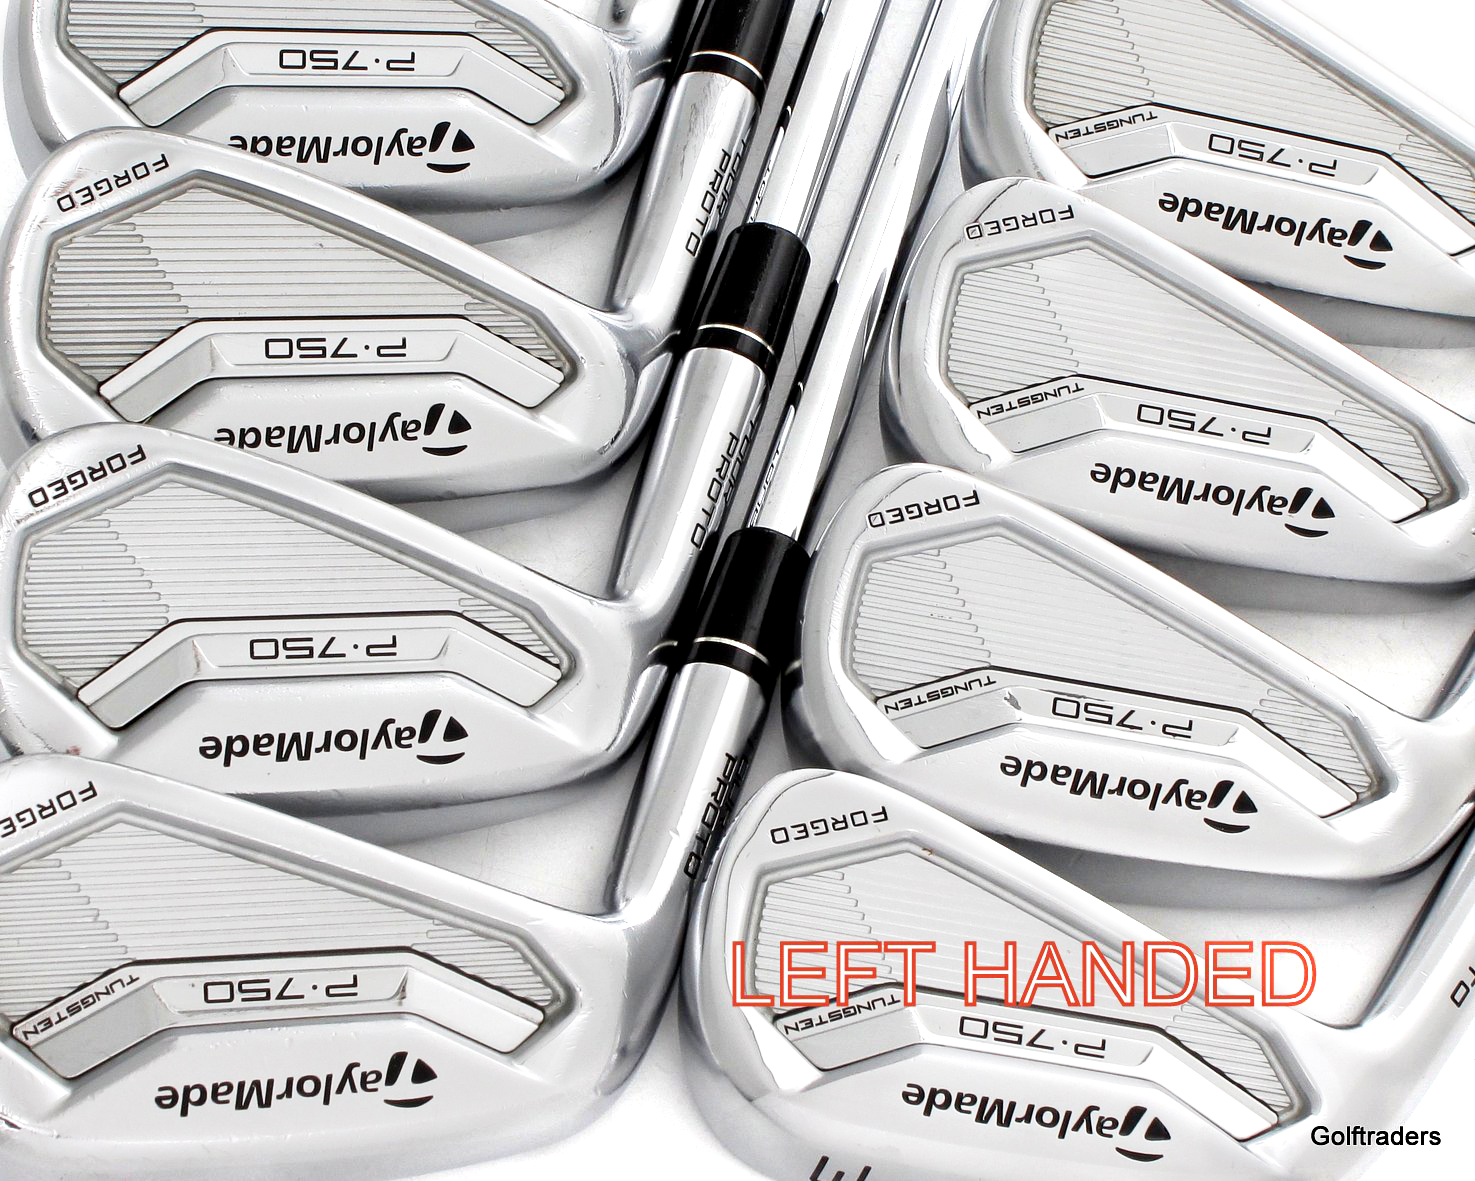 Taylormade Forged Tour Proto P-750 Irons 3-PW Steel Extra Stiff Flex LH F6008 - Image 1